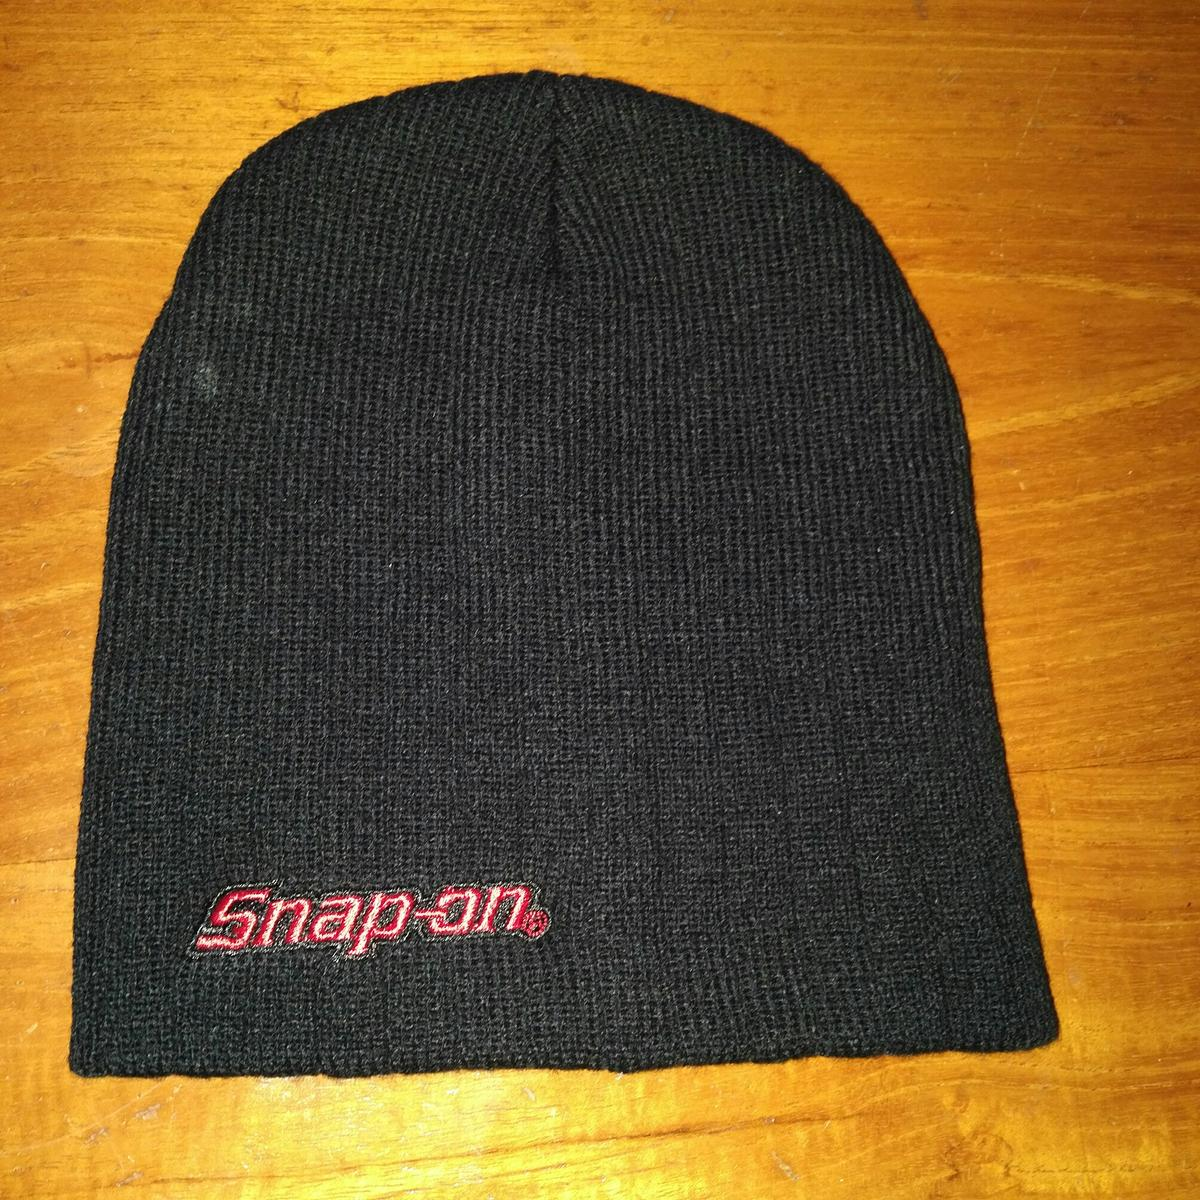 f3f8cb240 Snap-on Snapon snap on winter hat